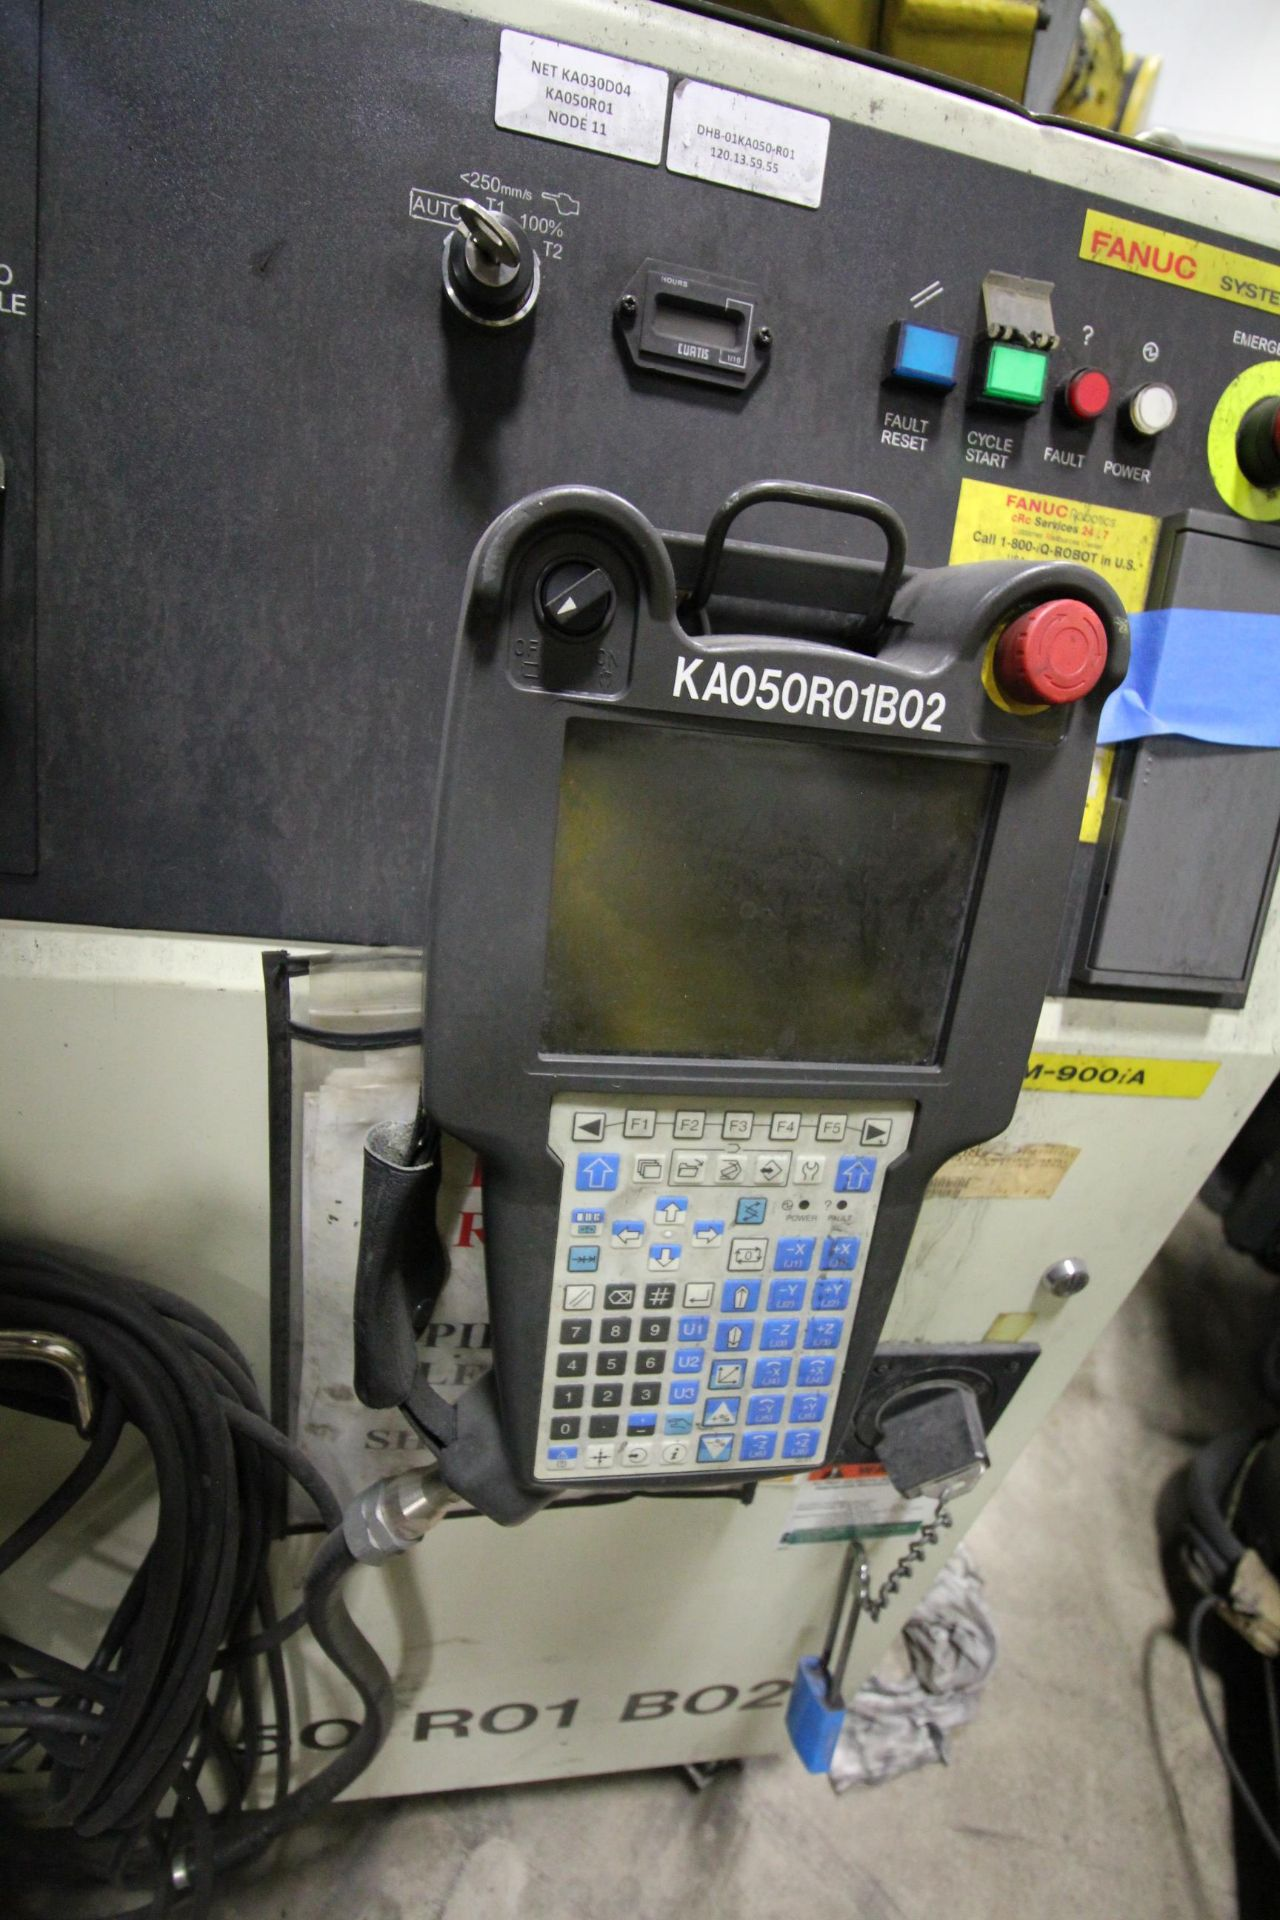 FANUC ROBOT M900iA/260L WITH R-30iA CONTROL, CABLES & TEACH PENDANT, SN 97368, YEAR 2009 - Image 5 of 9